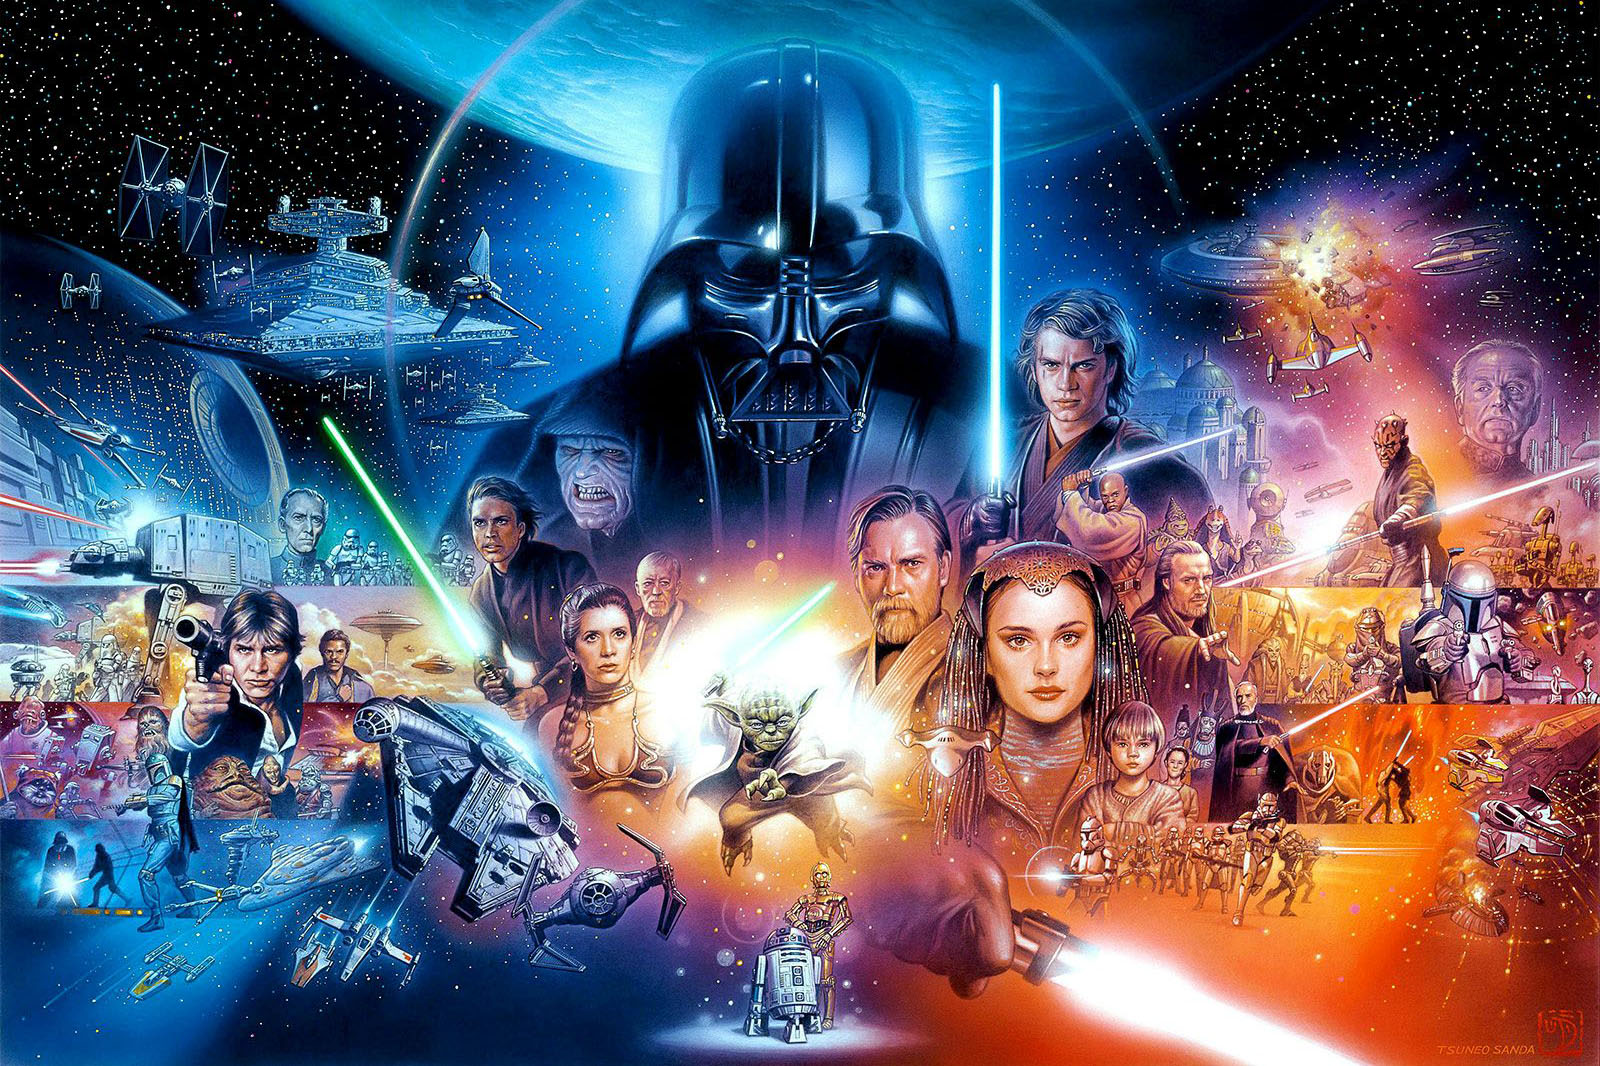 The Good, the Bad and the Ugly of Star Wars | LM2 CREATIVE